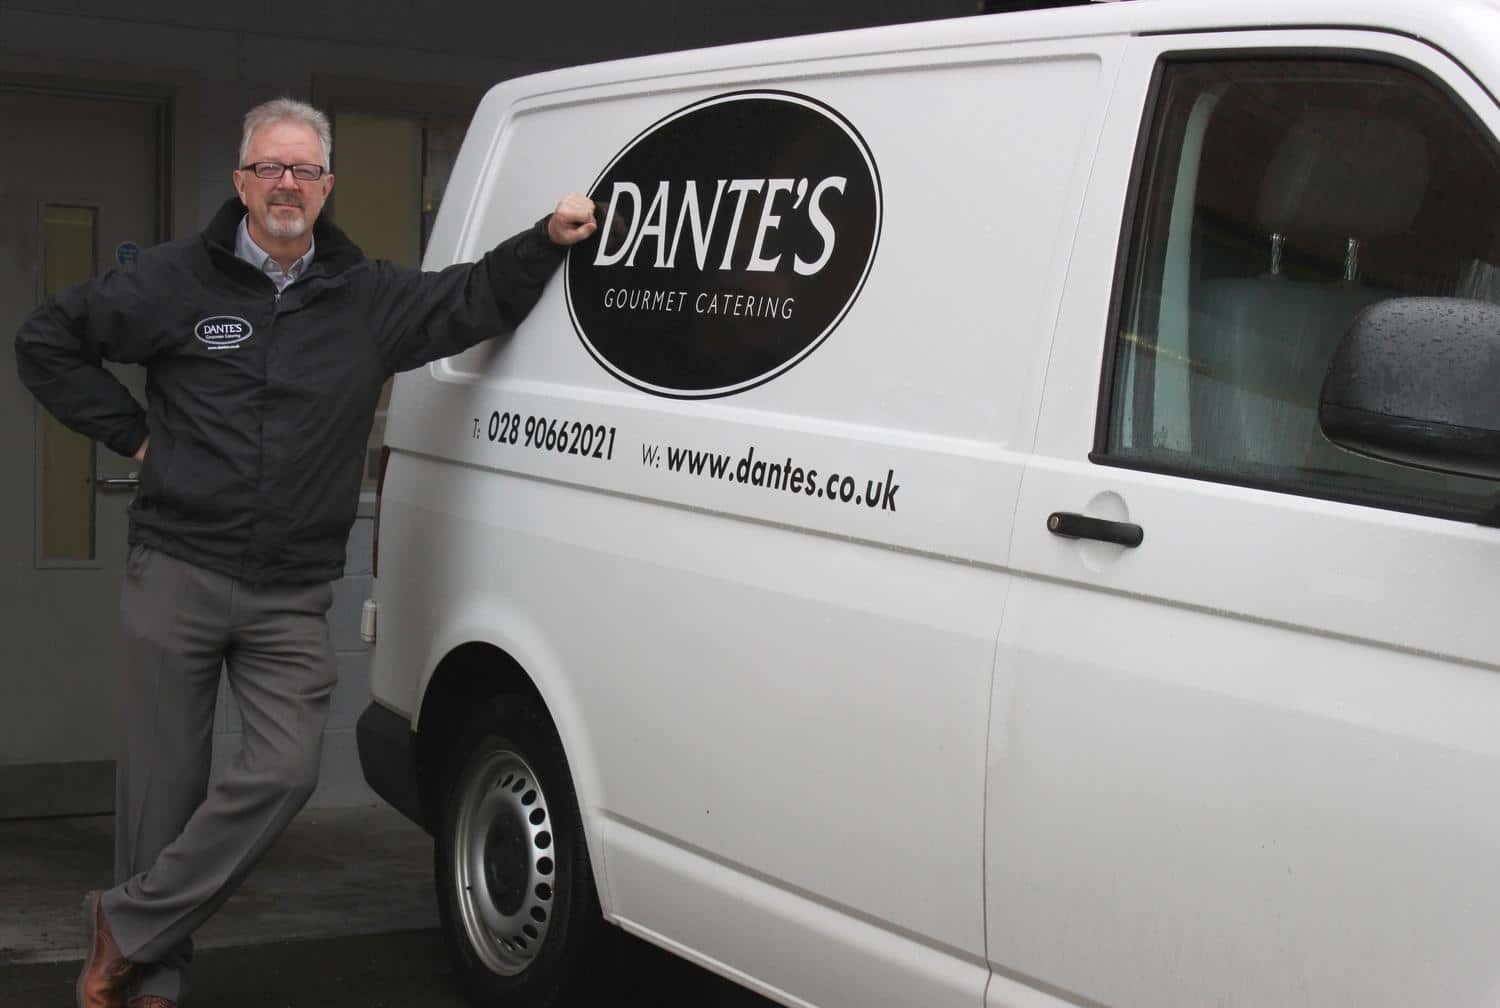 Henry Johnston Dantes Catering - The Ortus Group